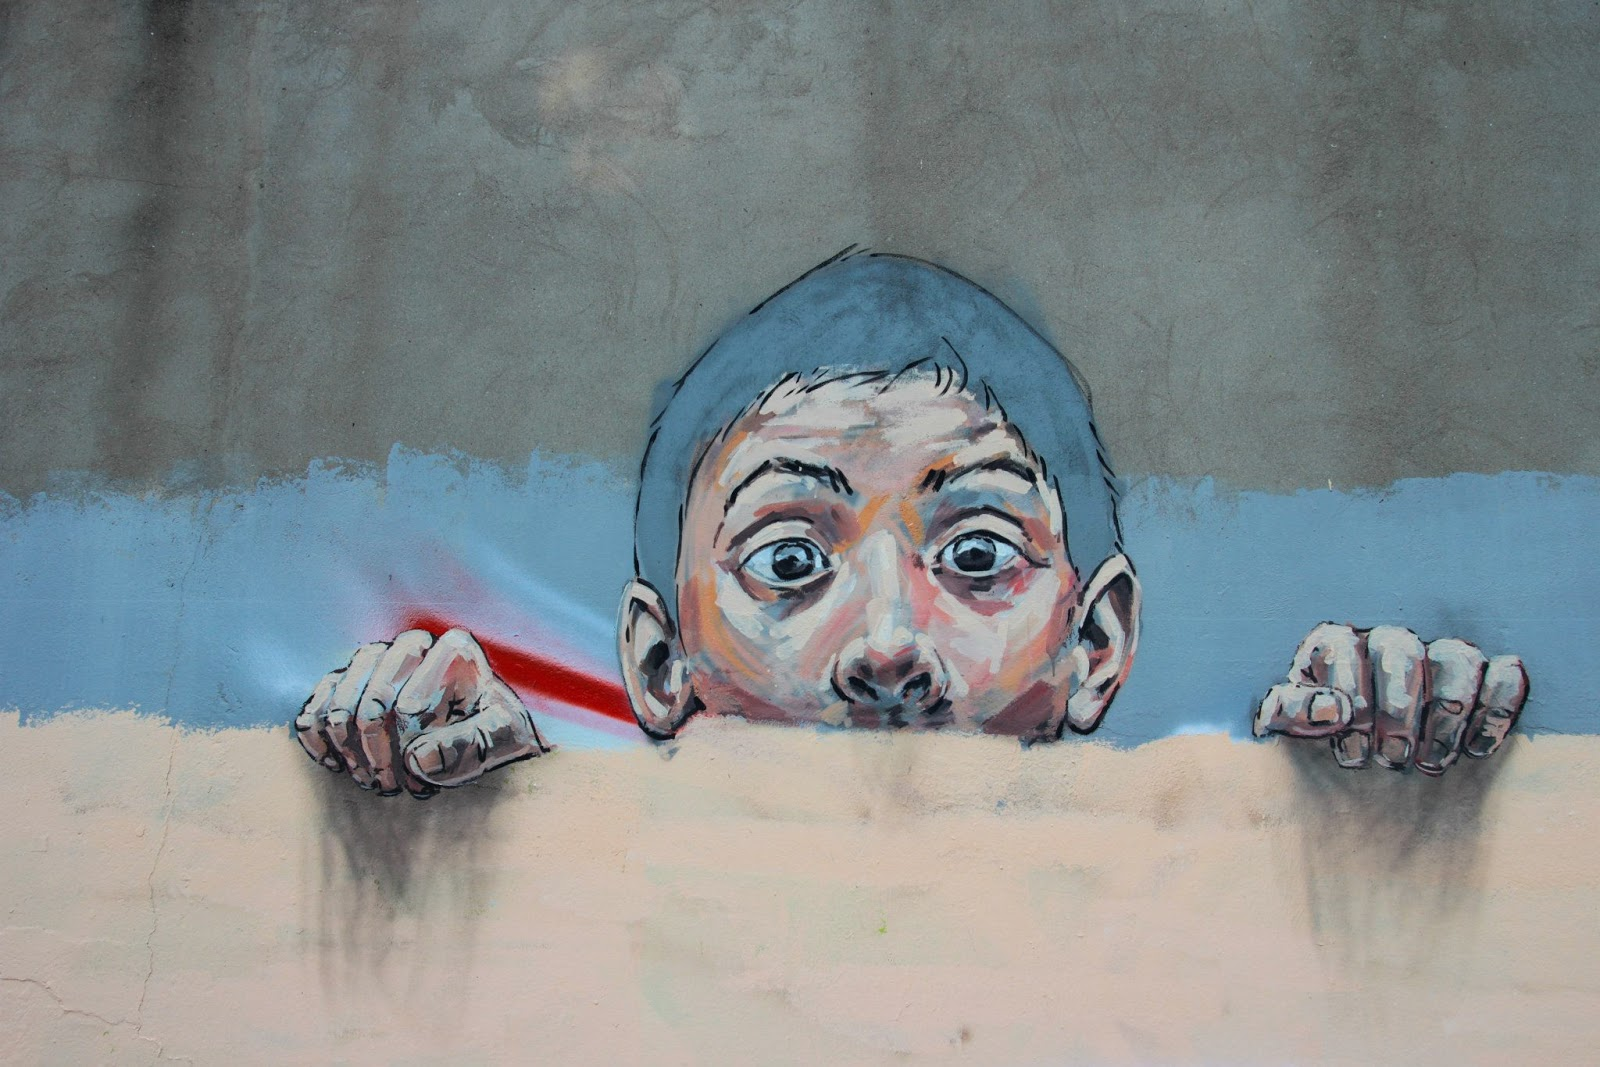 ernest-zacharevic-new-pieces-in-barcelona-spain-02